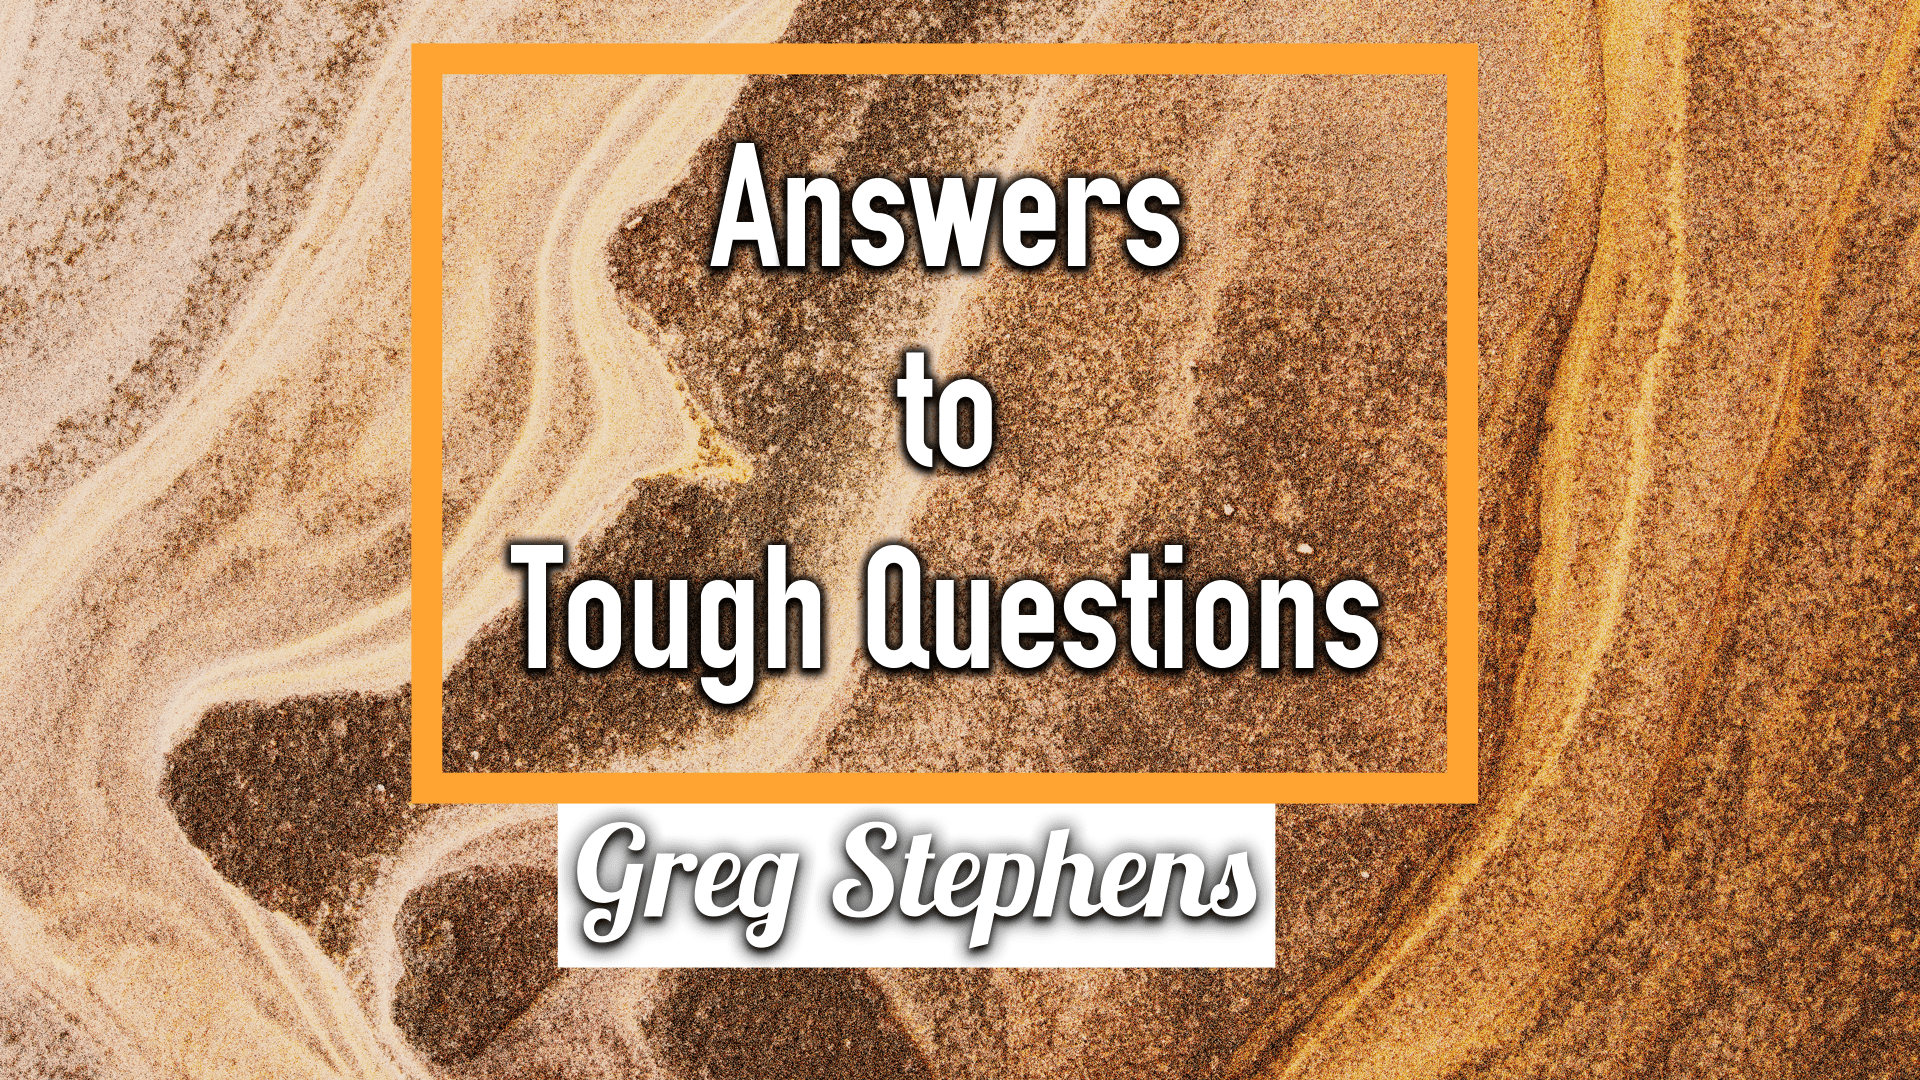 Tough Questions - Greg Stephens